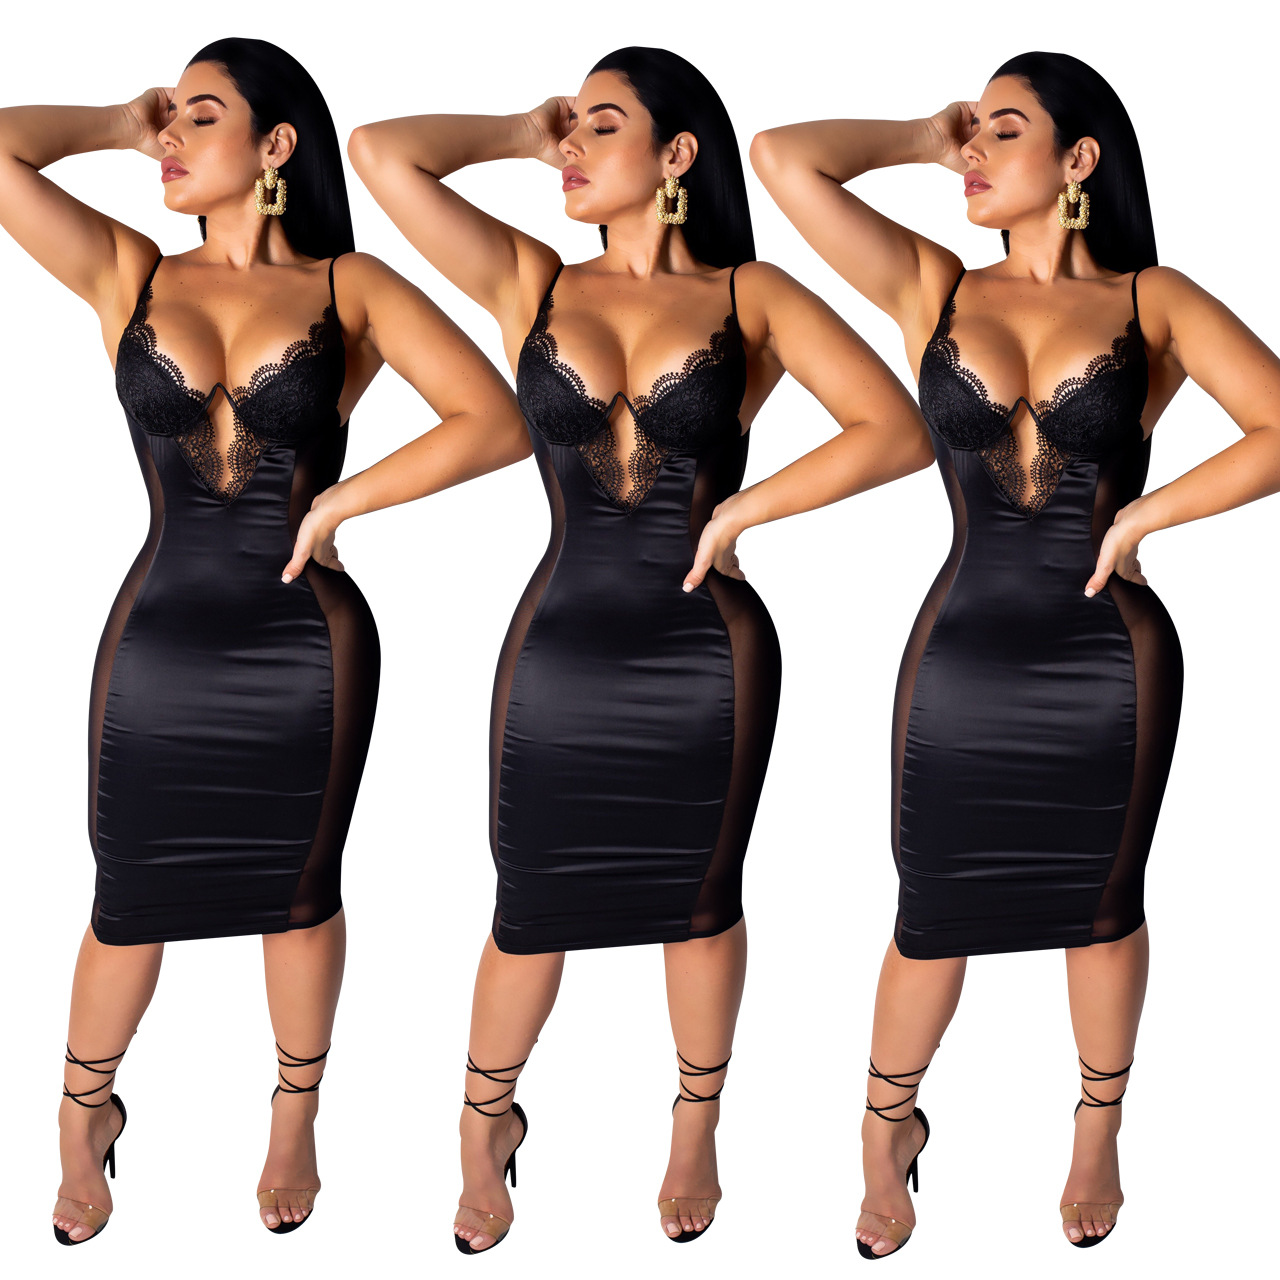 2019 Summer Bodycon Birthday Dress Women Lace Mesh Party Dresses Ladies Sexy Sling Backless Slim Midi Black Club Dress Plus Size in Dresses from Women 39 s Clothing